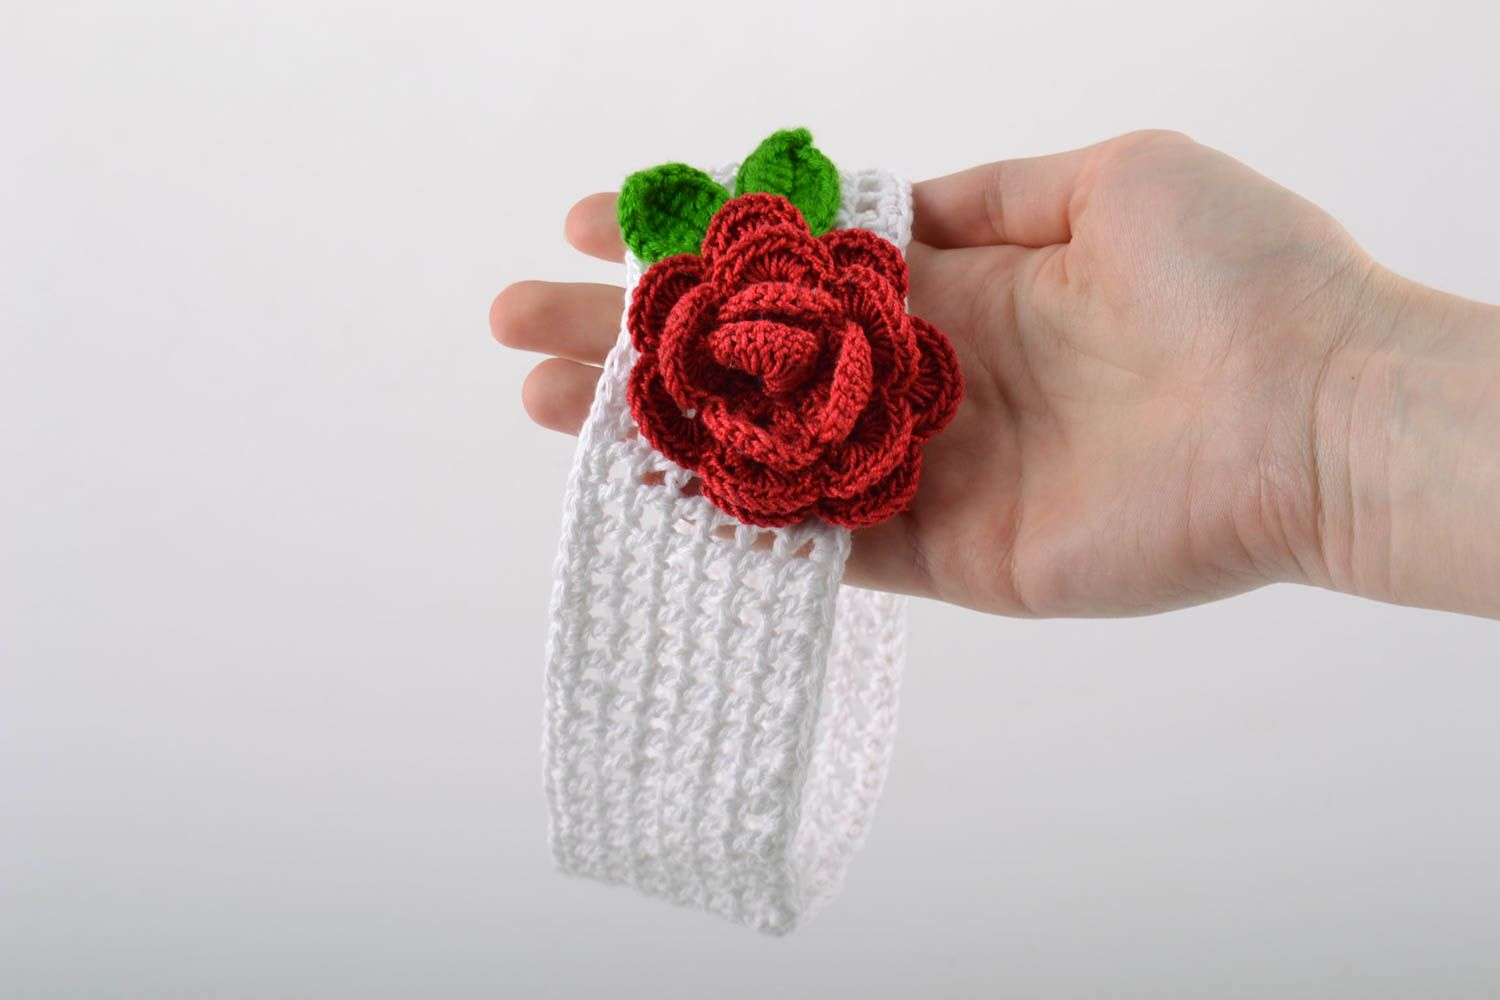 Handmade wide lacy crochet white headband with volume red flower for baby girl photo 2